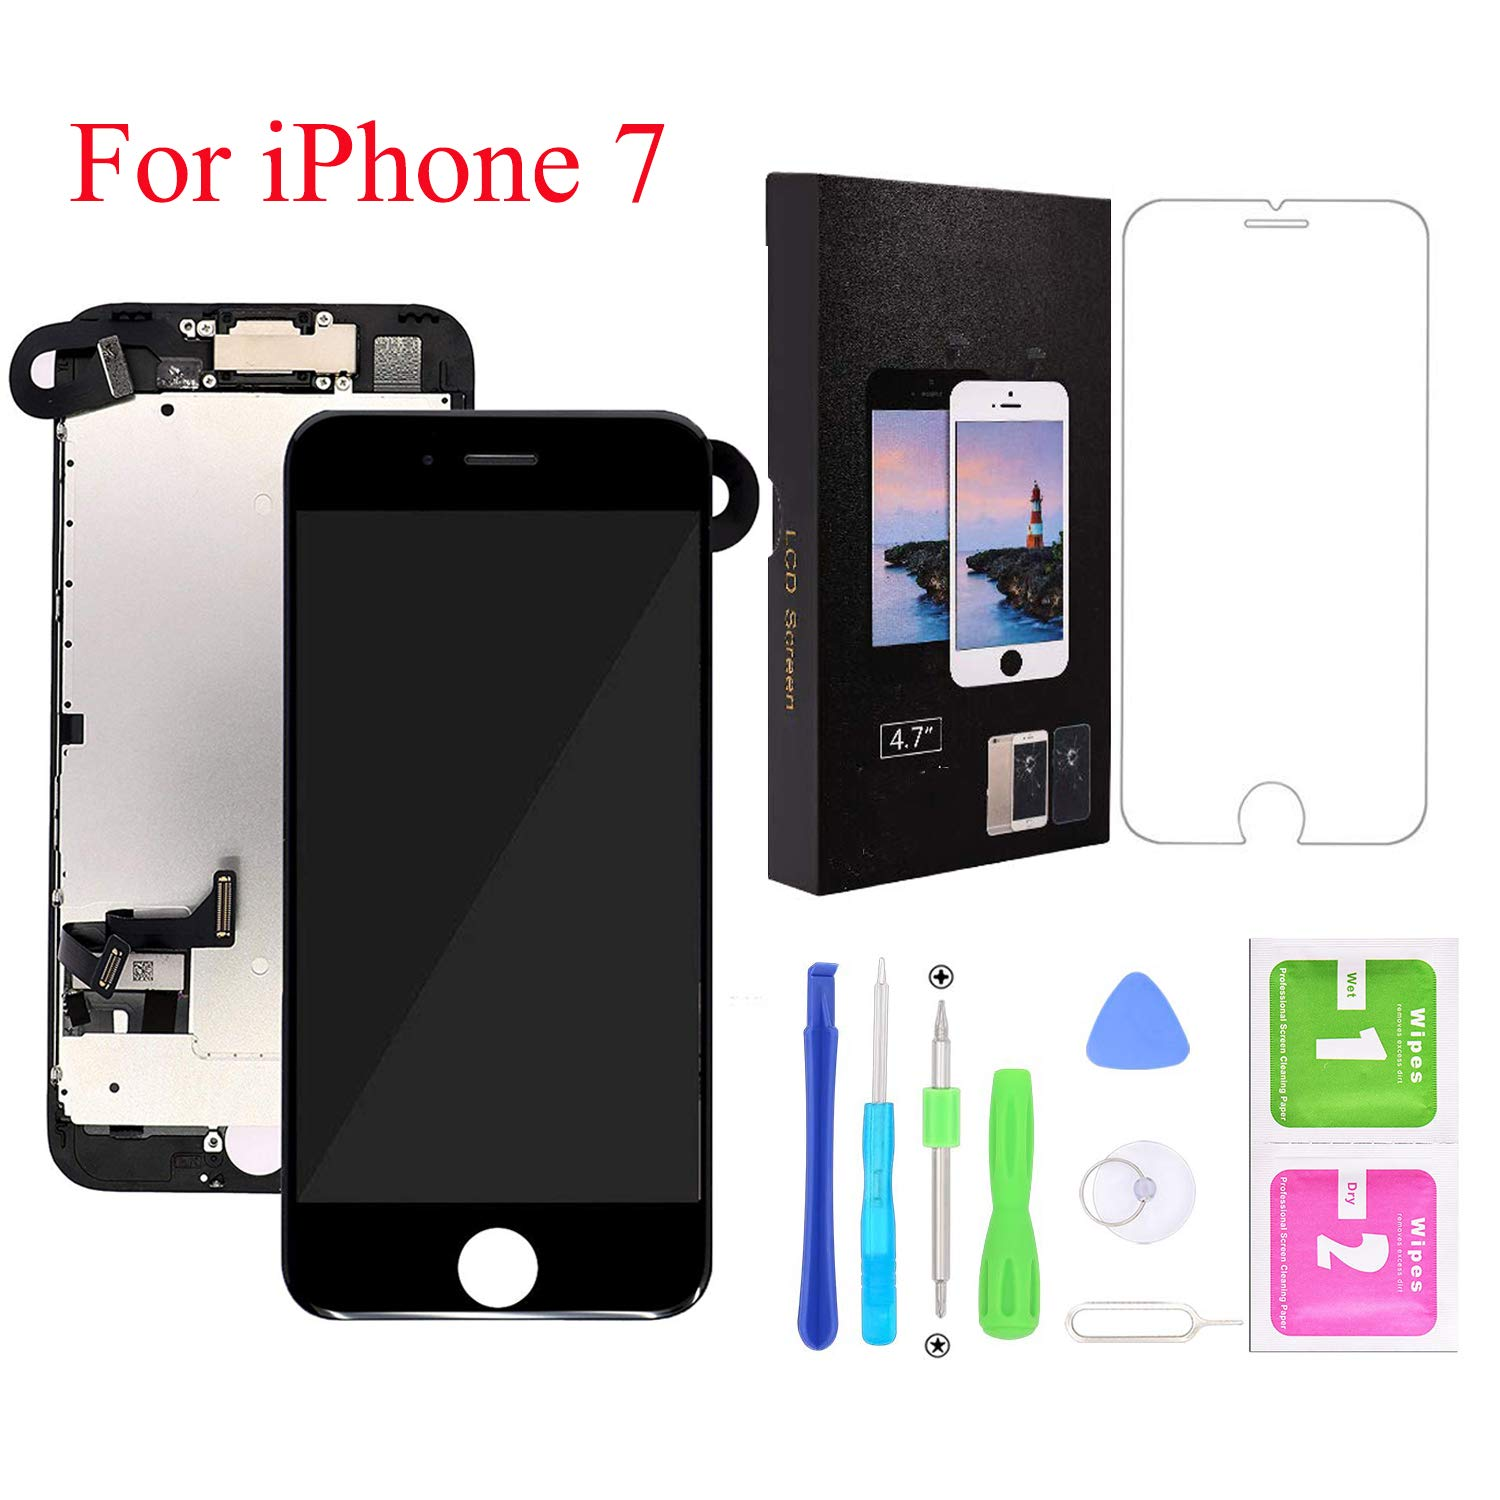 Screen Replacement for iPhone 7, LCD Display and Touch Screen Digitizer Replacement Full Assembly with Proximity Sensor+Ear Speaker+Front Camera and Screen Replacement Repair Tool and Protector